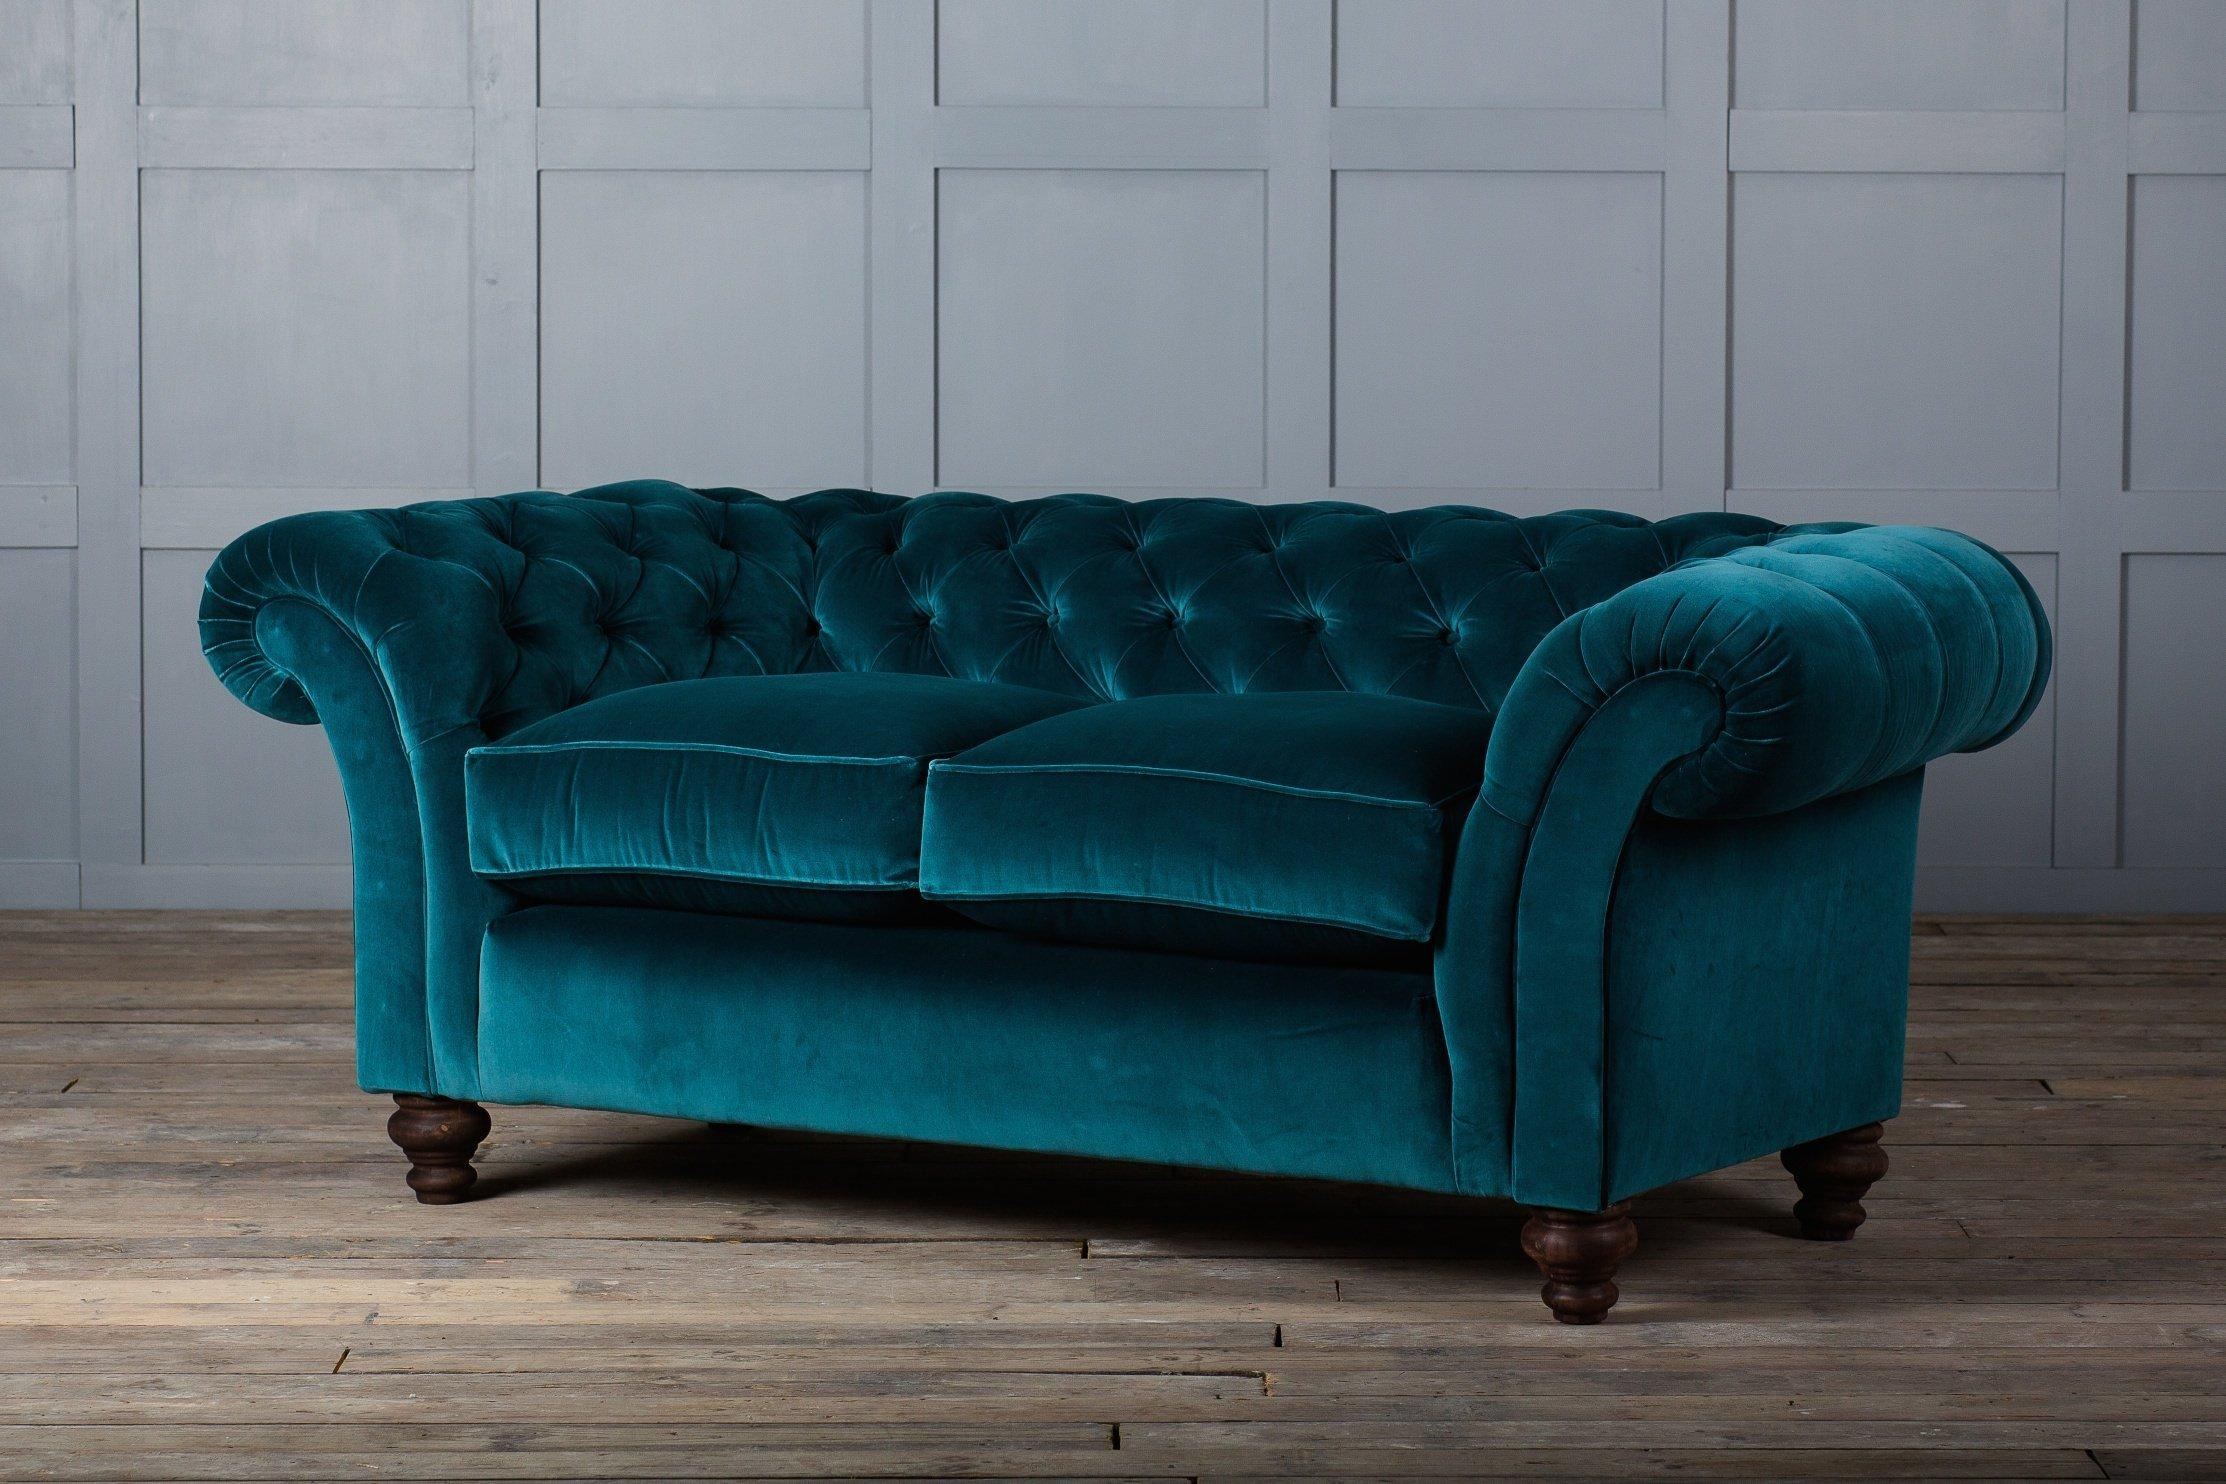 Velvet Tufted Sofa Canada | Tehranmix Decoration intended for Blue Velvet Tufted Sofas